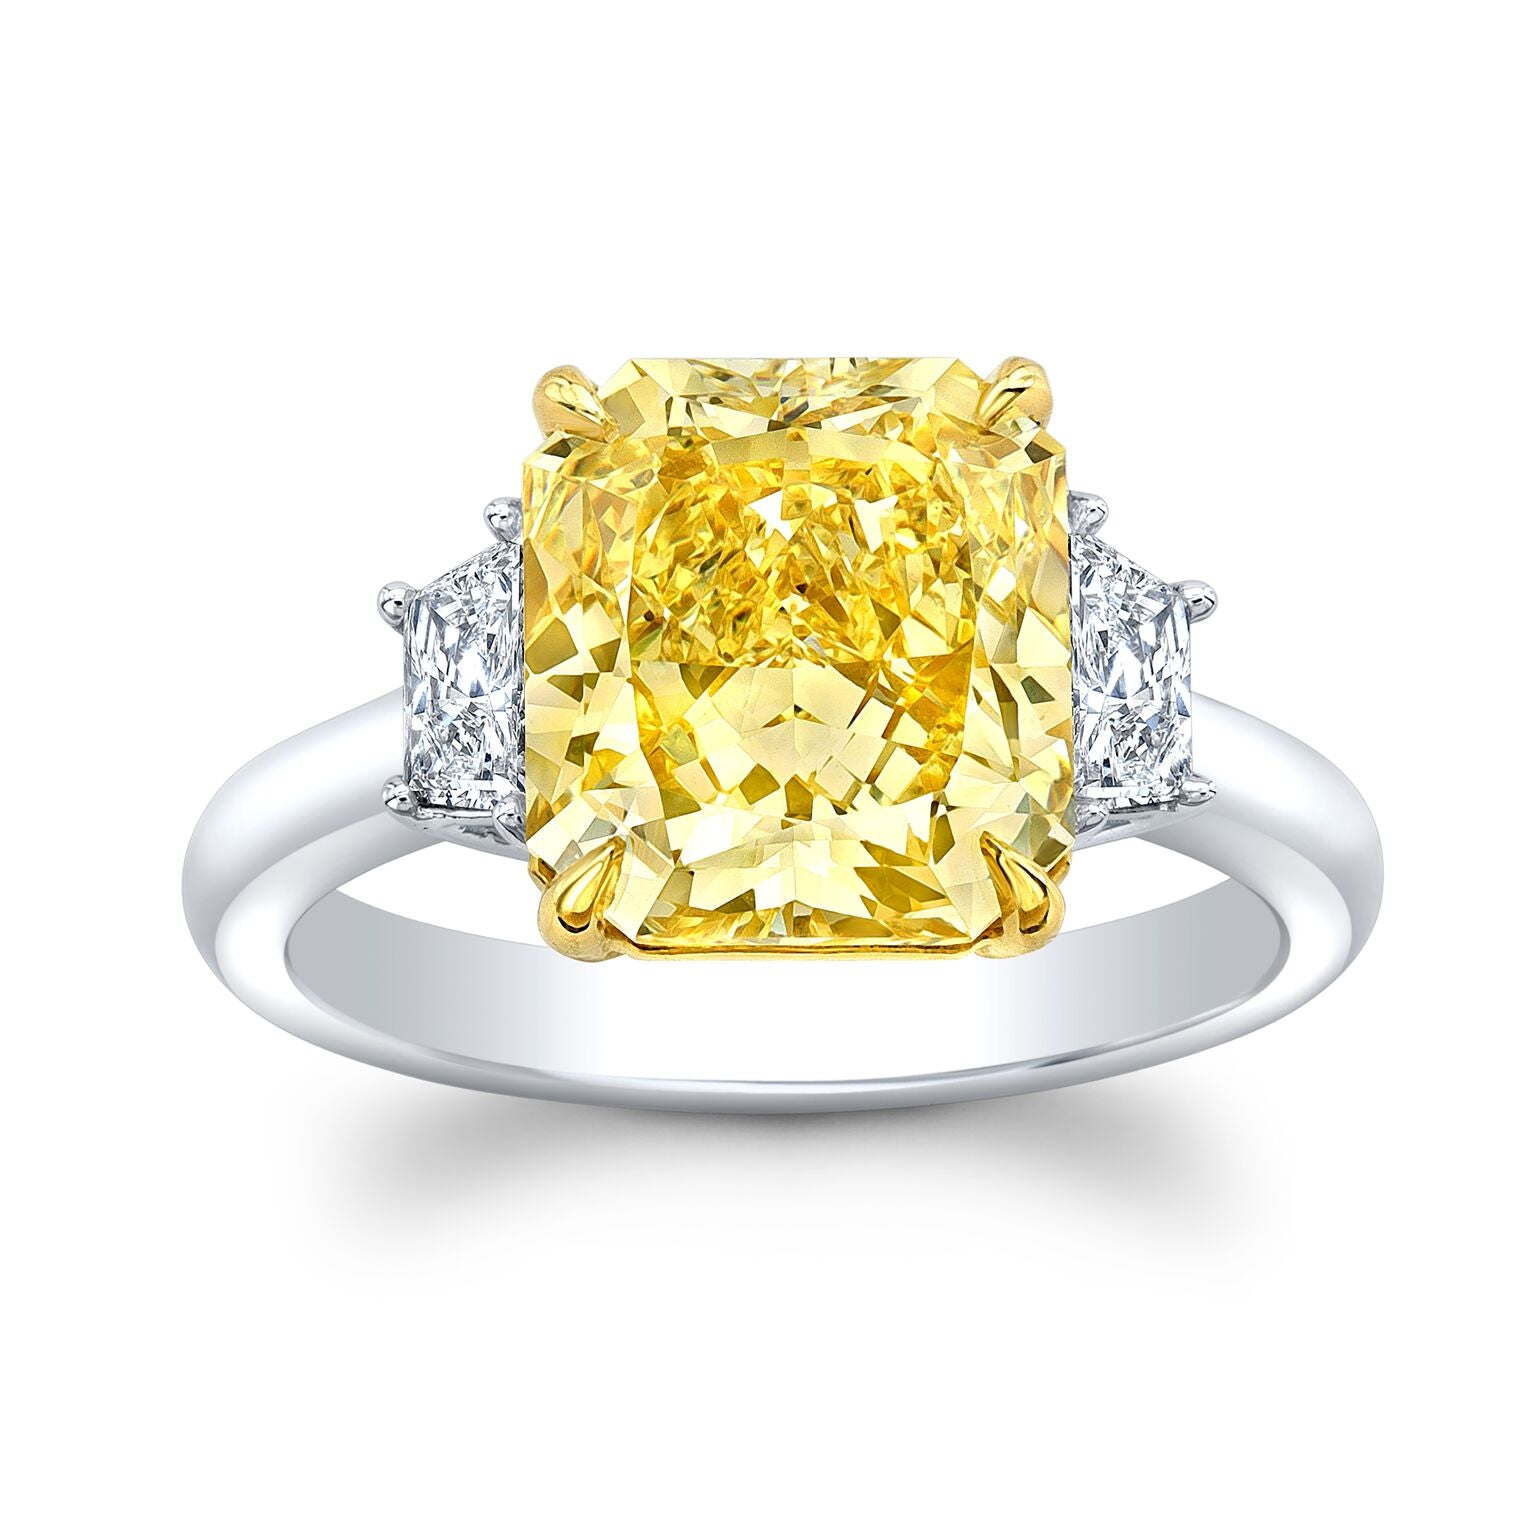 4.16 Ct. Intense Yellow Radiant Cut Diamond Ring - Mizrahi Diamonds